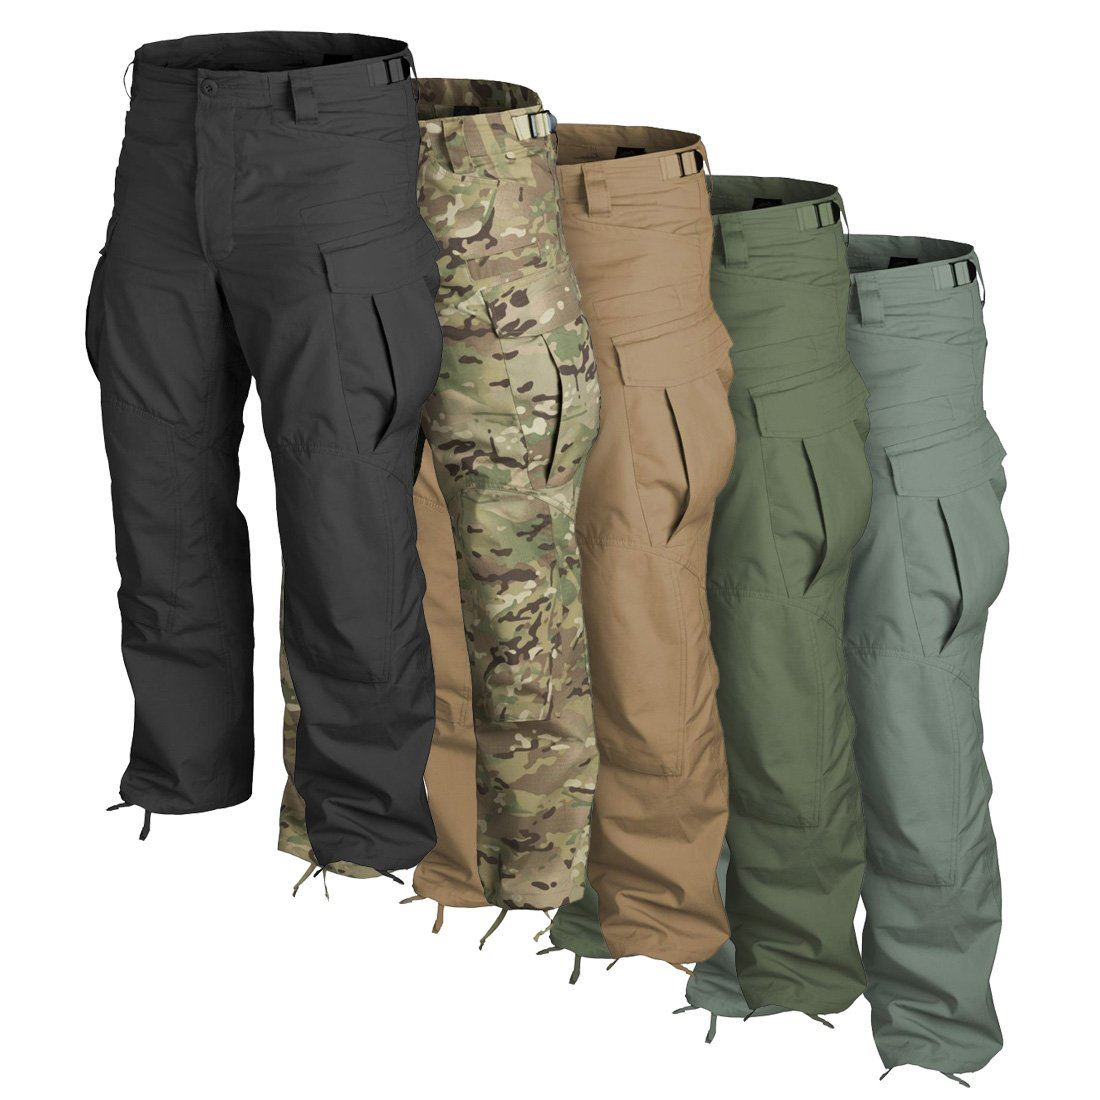 better price for picked up preview of MENS COMBAT PANTS CARGO UNIFORM SFU HELIKON ARMY NEXT ...